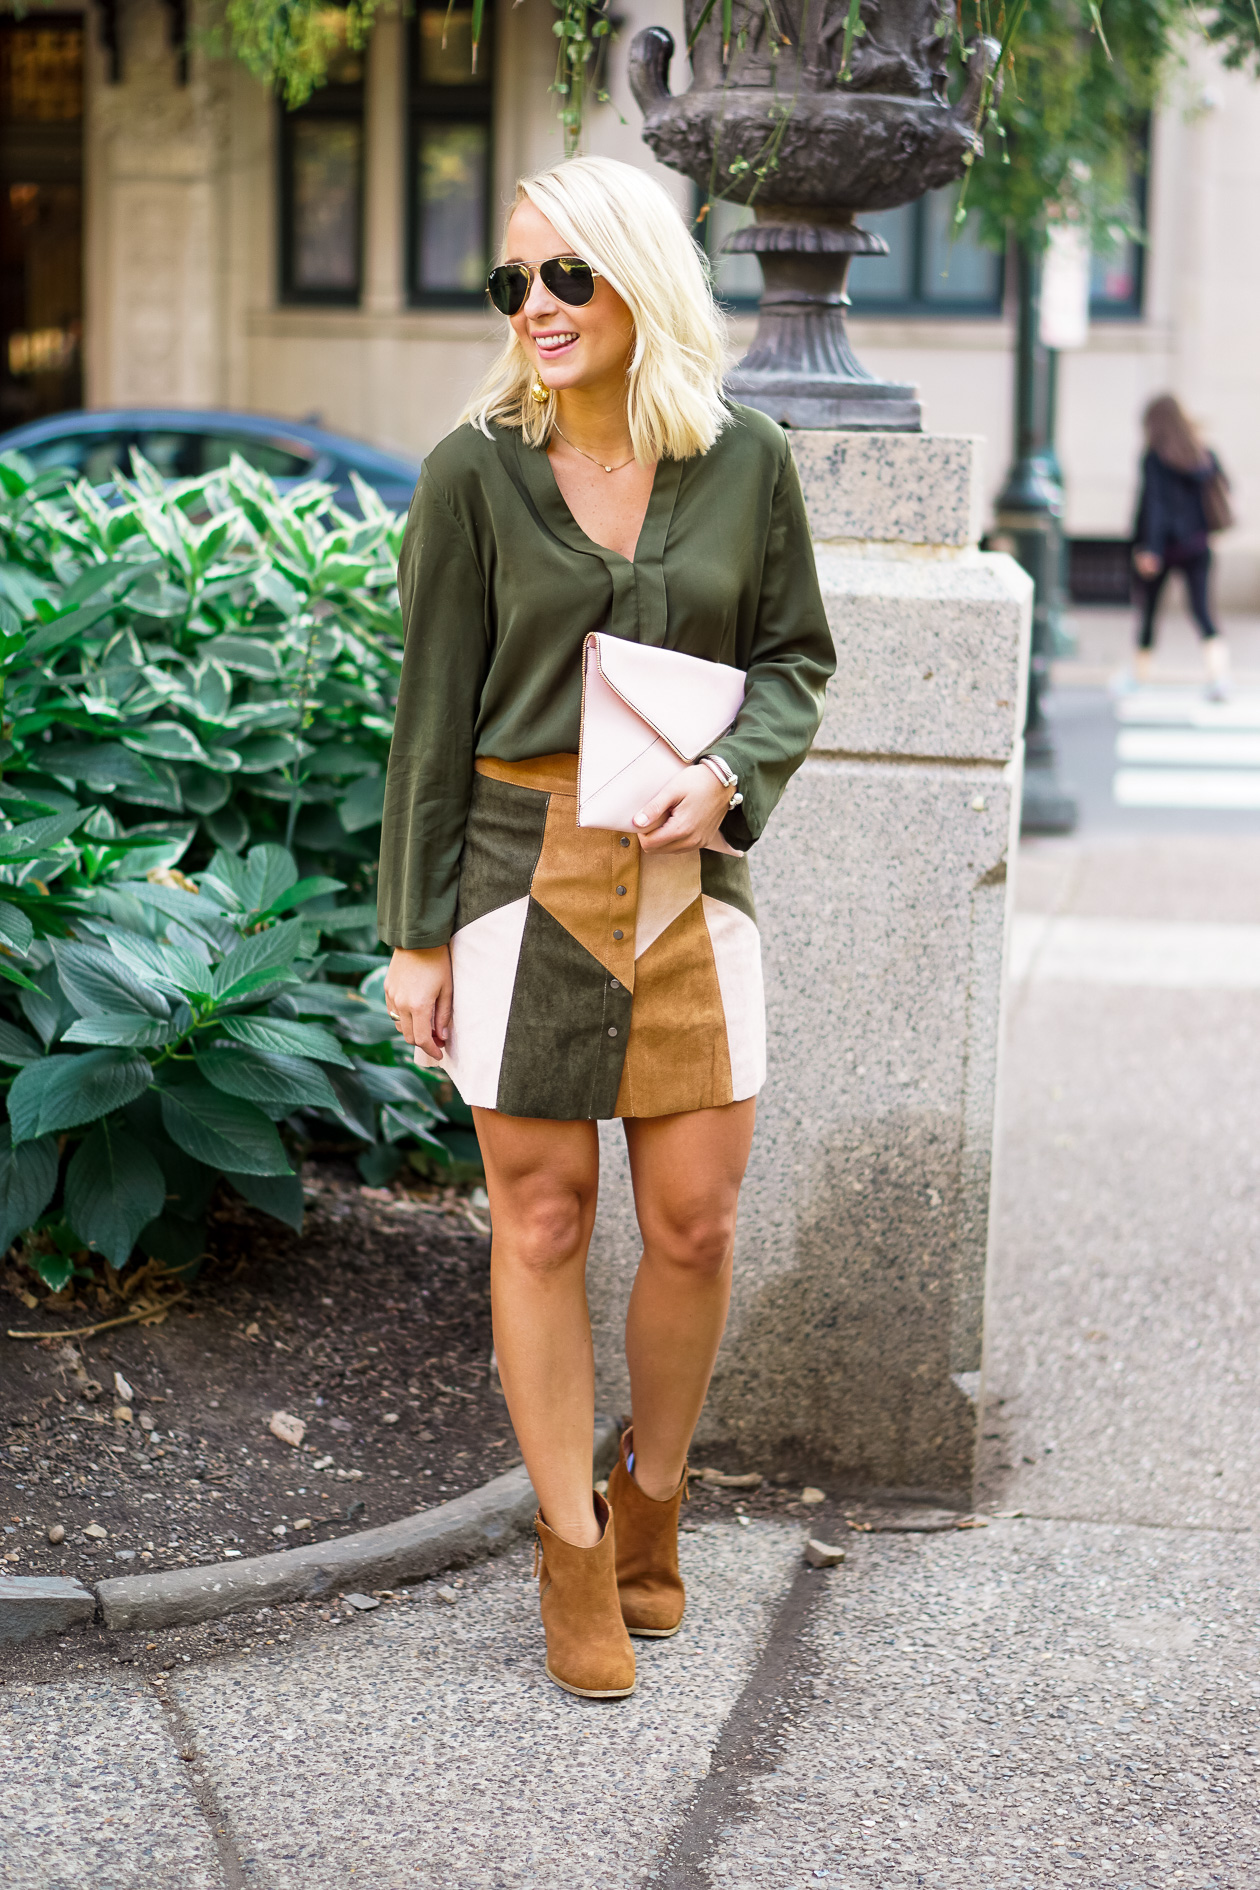 South Moon Under suede skirt and forest green silk top with brown suede booties in Rittenhouse Square, Philadelphia blogger